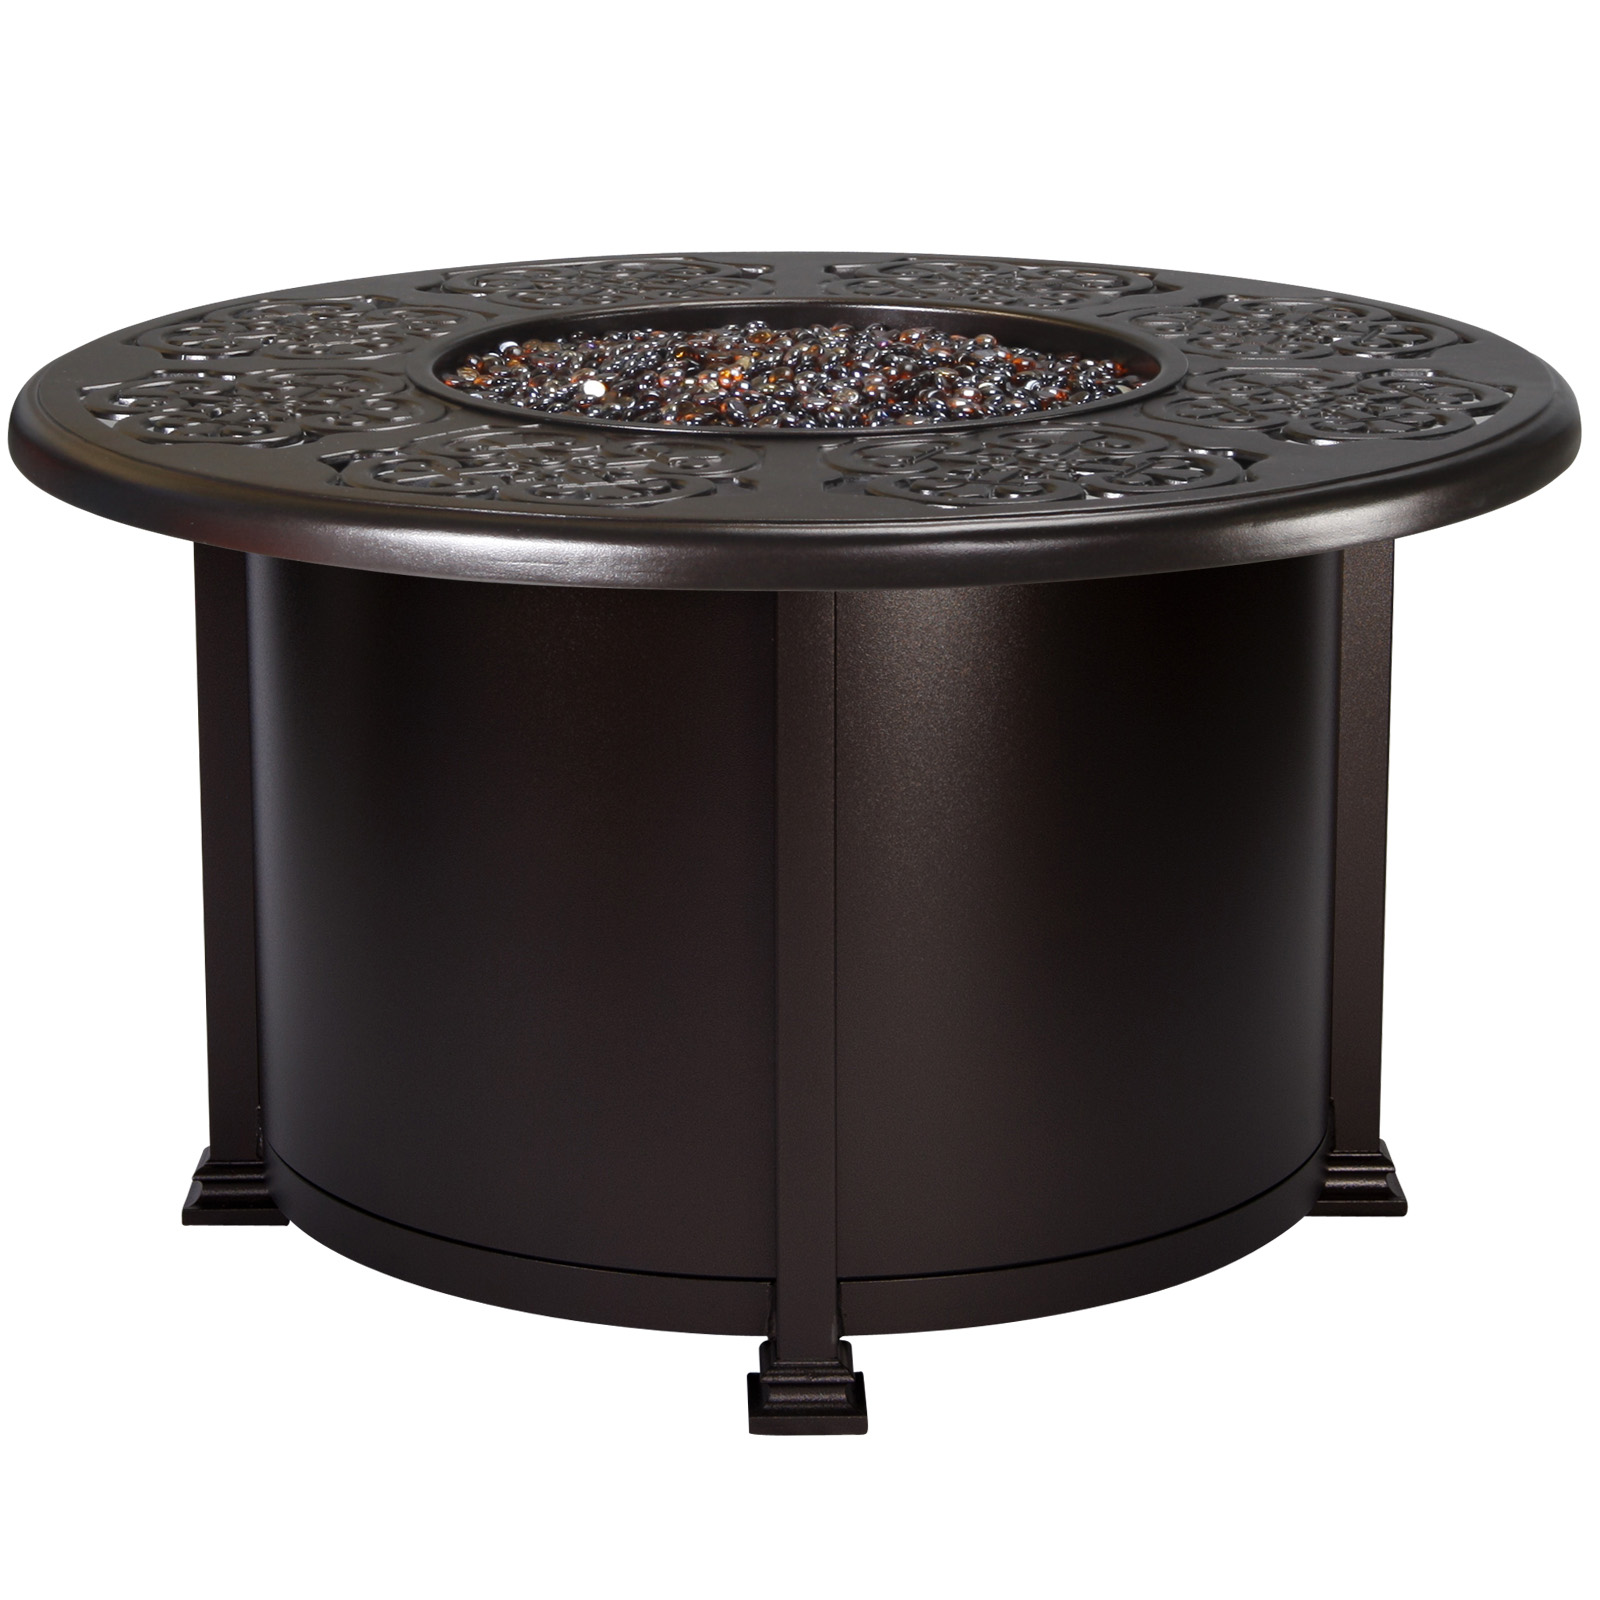 "OW Lee Hacienda 42"" Round Chat Fire Pit Table - 5132-42RDC"